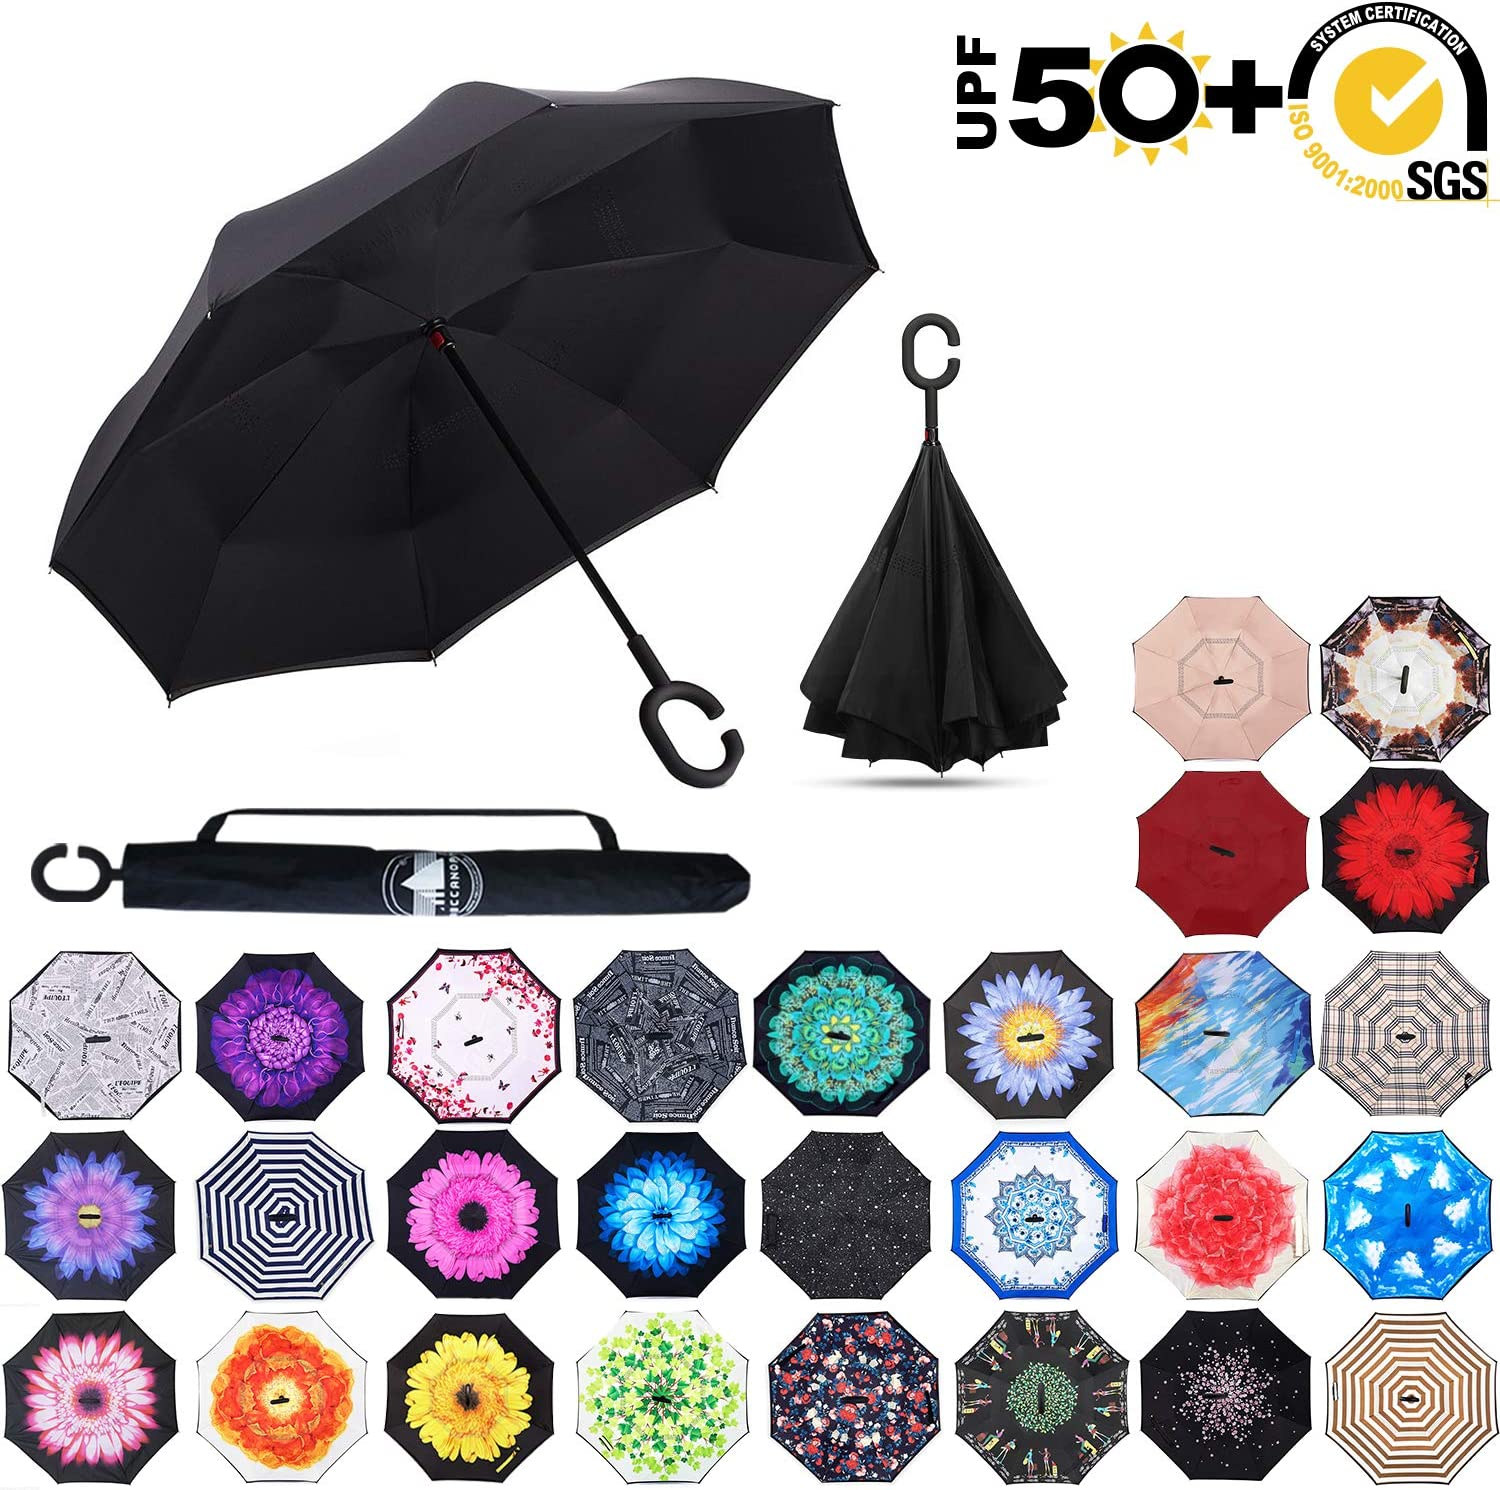 ABCCANOPY Inverted Umbrella,Double Layer Reverse Rain&Wind Teflon Repellent Umbrella for Car and Outdoor Use, Windproof UPF 50+ Big Straight Umbrella with C-Shaped Handle,Black